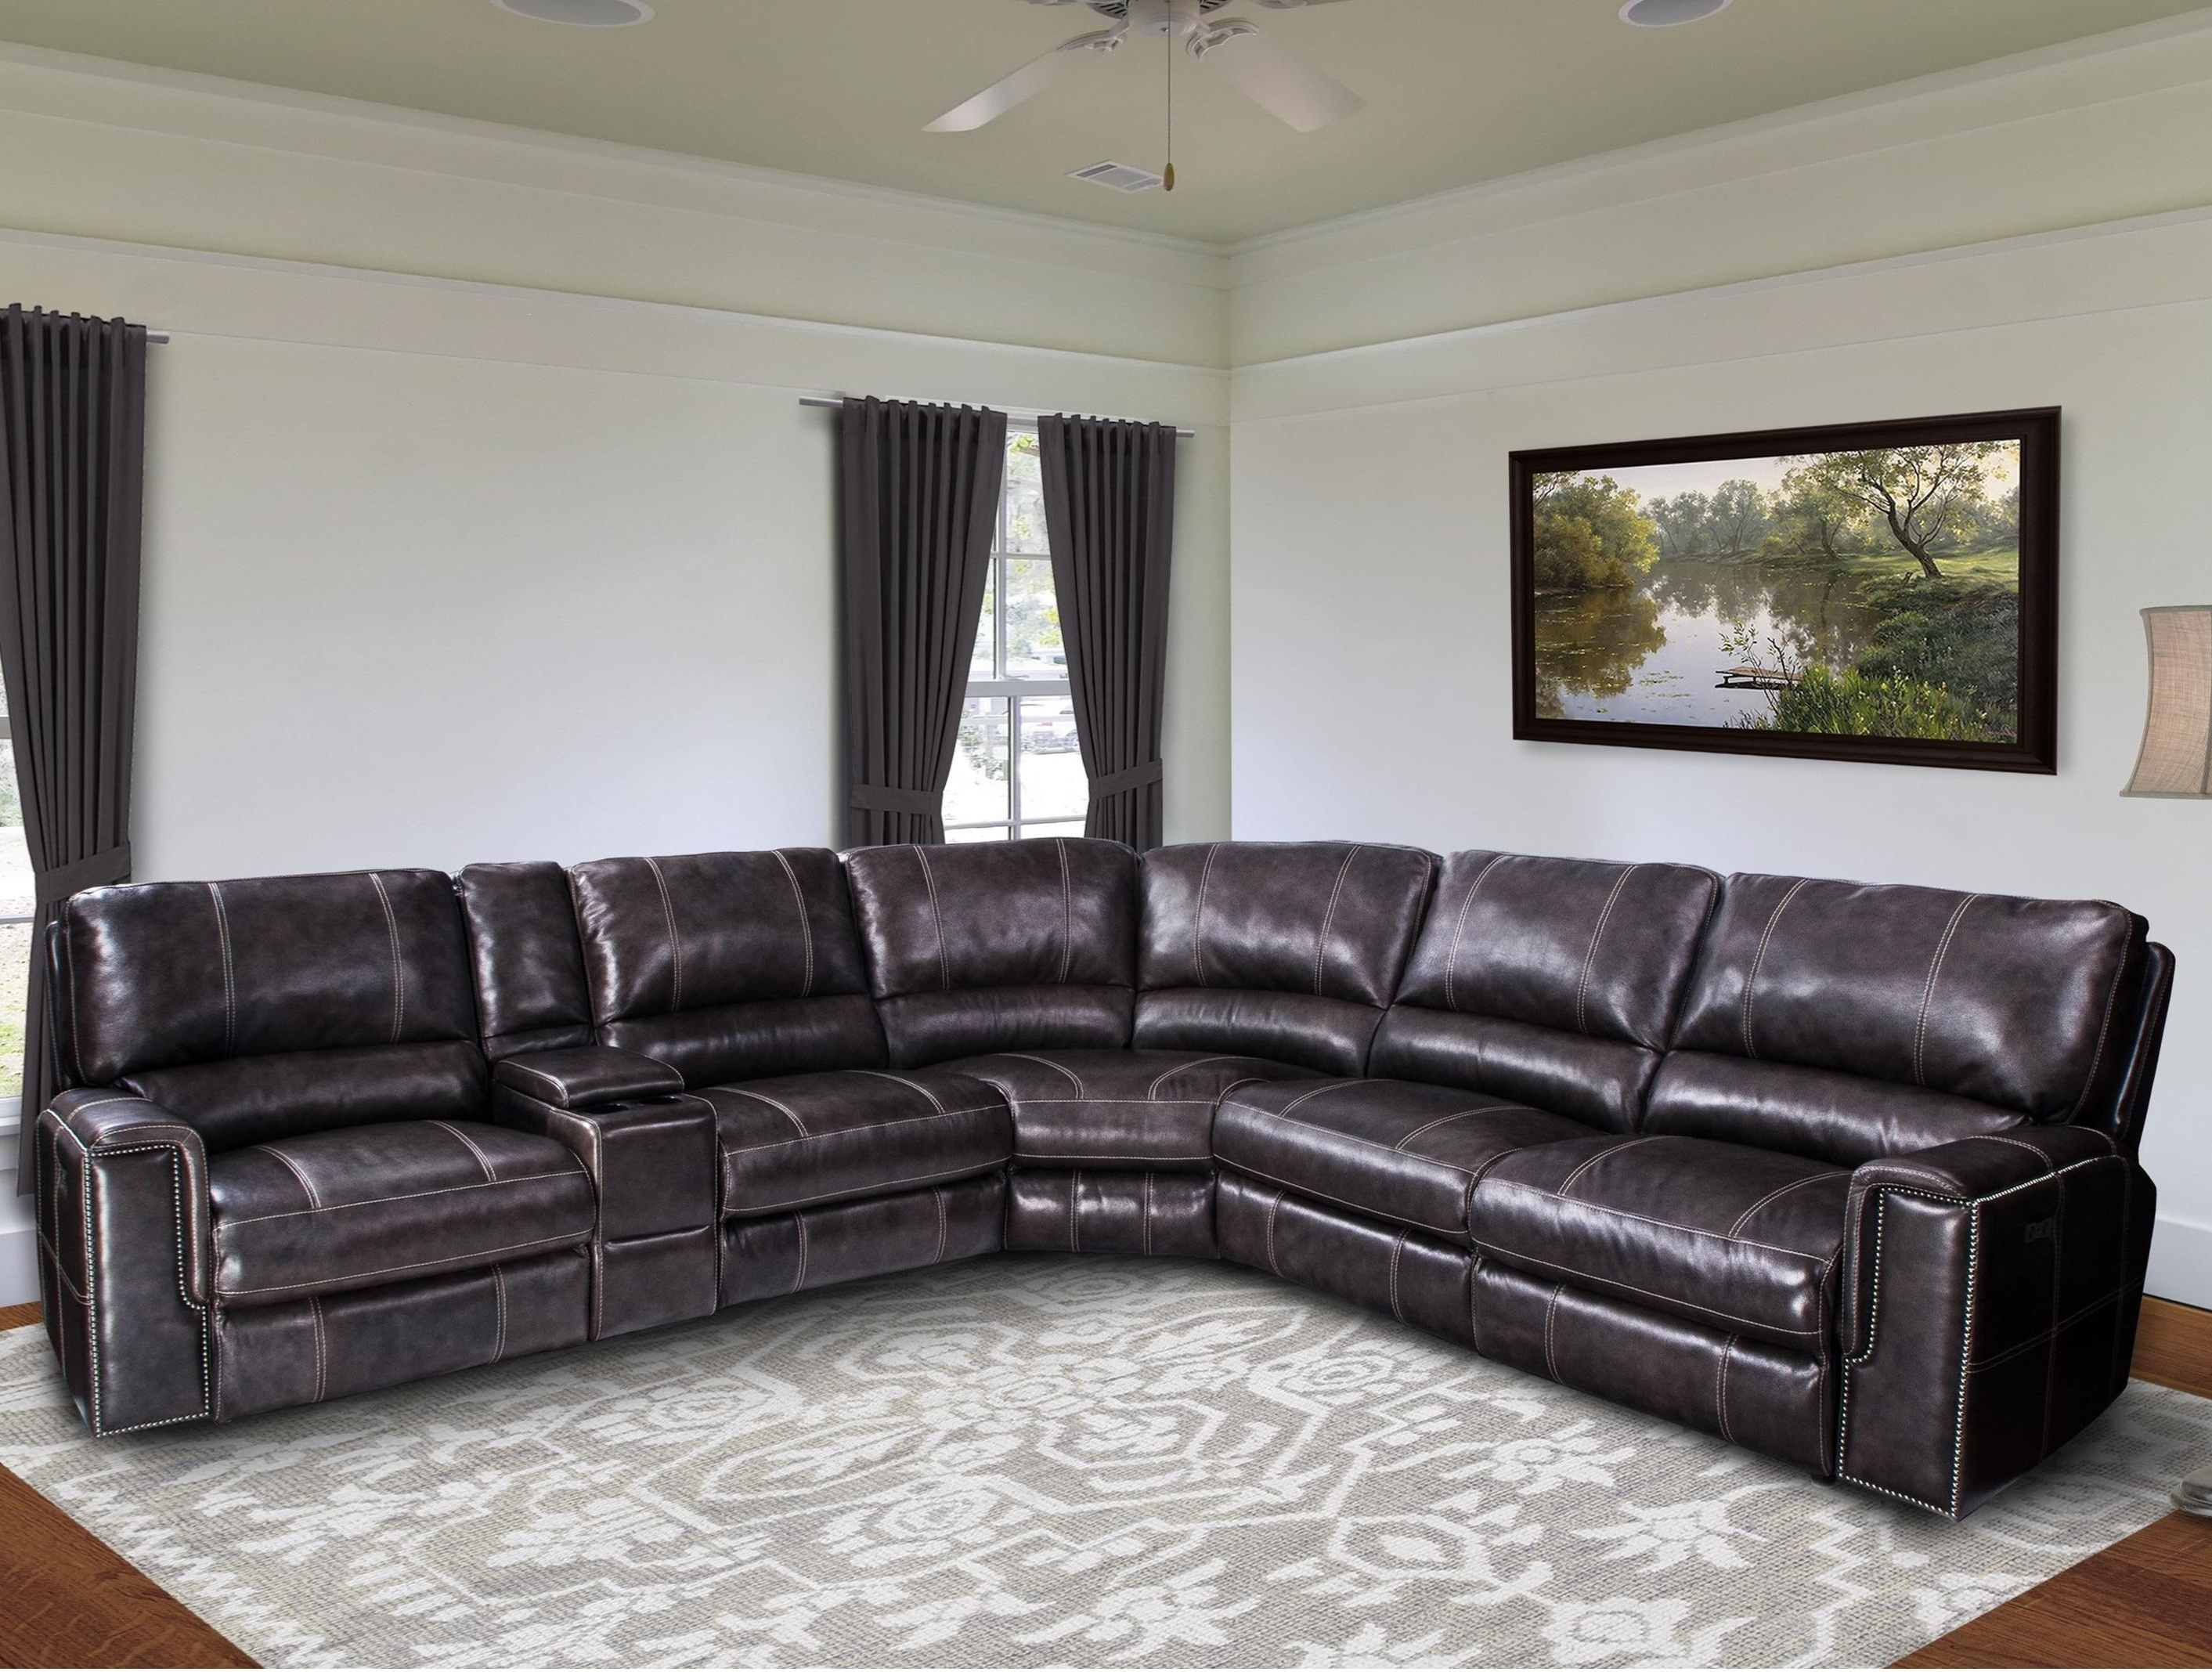 Newest Jerome's Sectional Sofas For Jerome Casual Power Reclining Sectional Sofa With Power Headrests (View 6 of 15)